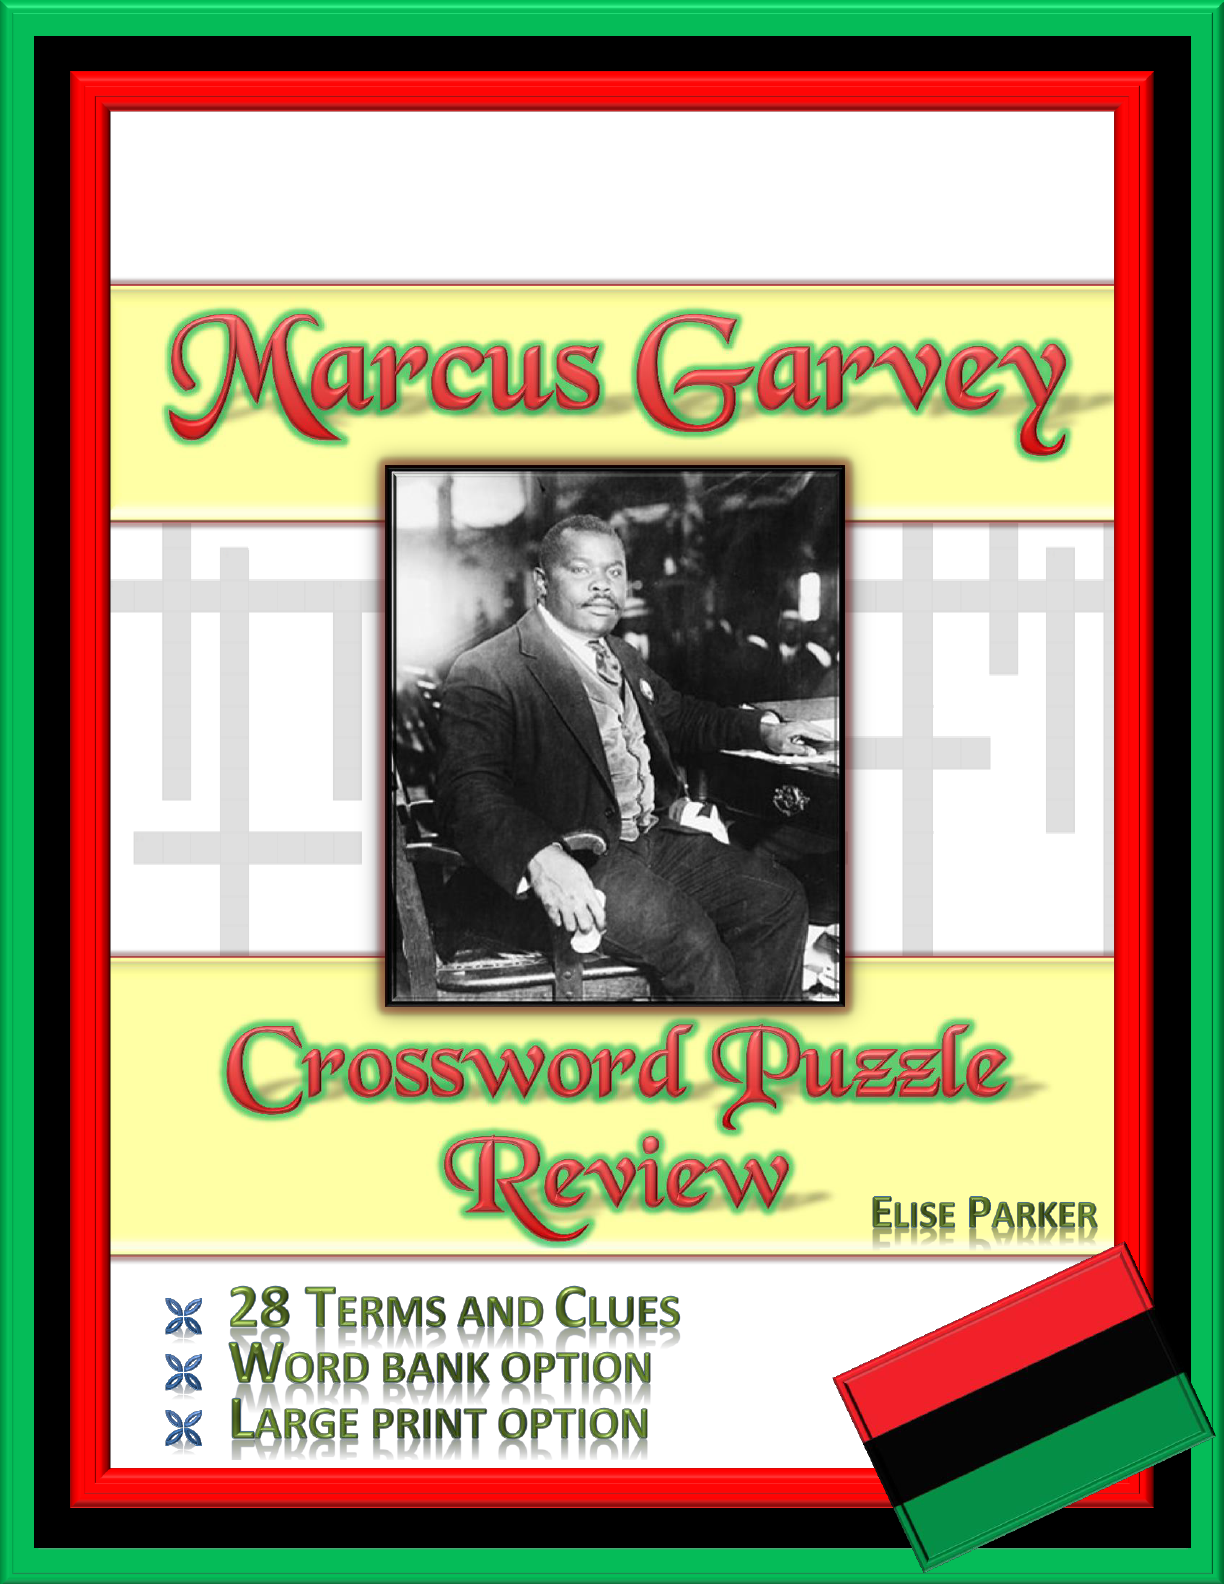 Marcus Garvey Crossword Puzzle Review